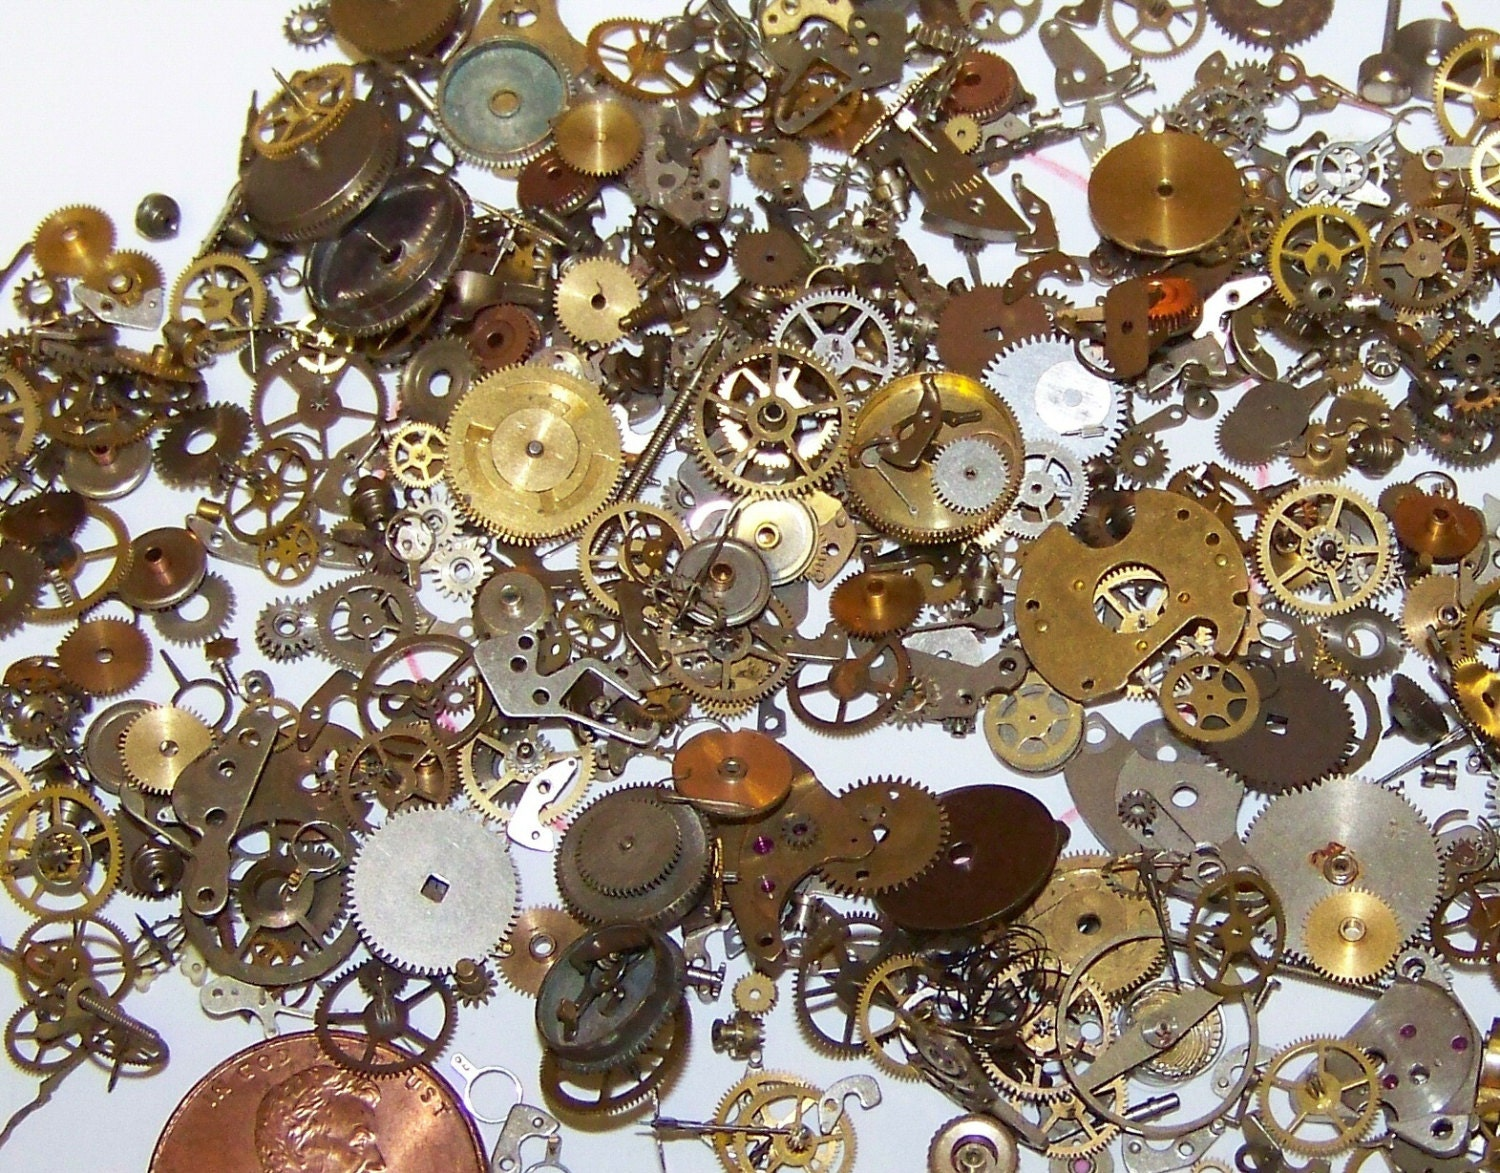 50 Off Sale 15 Grams Old Watch Parts Pieces Mix Lot